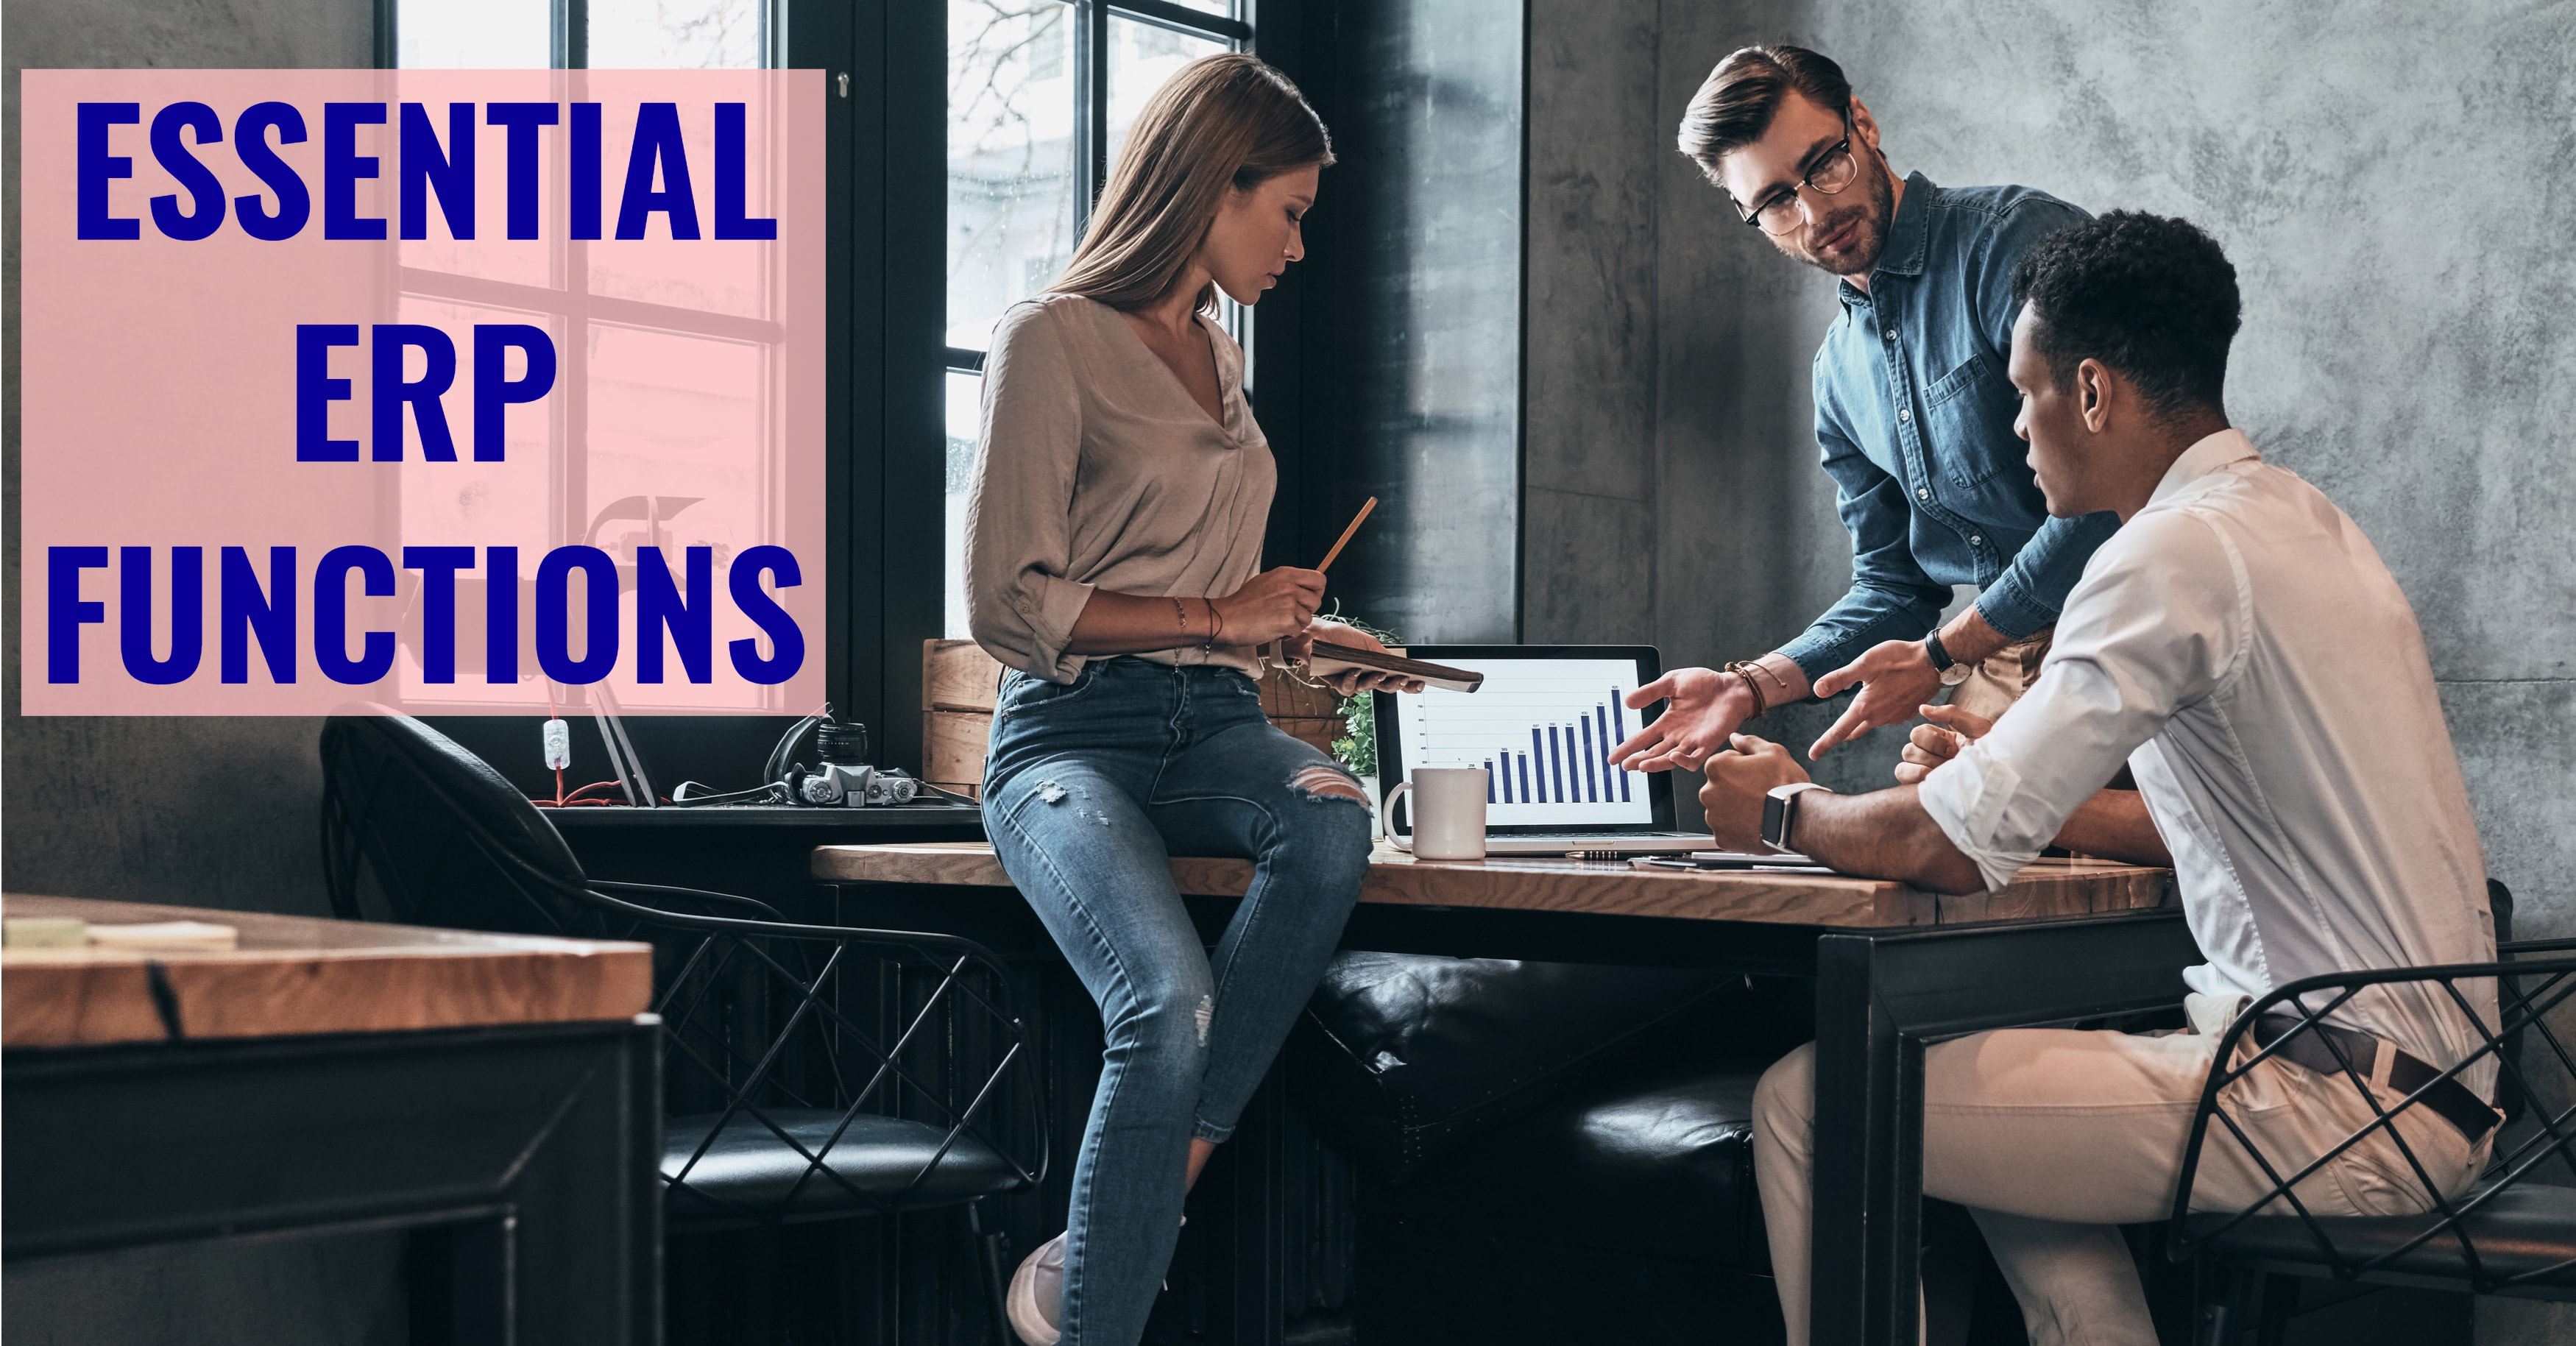 Essential ERP Functions